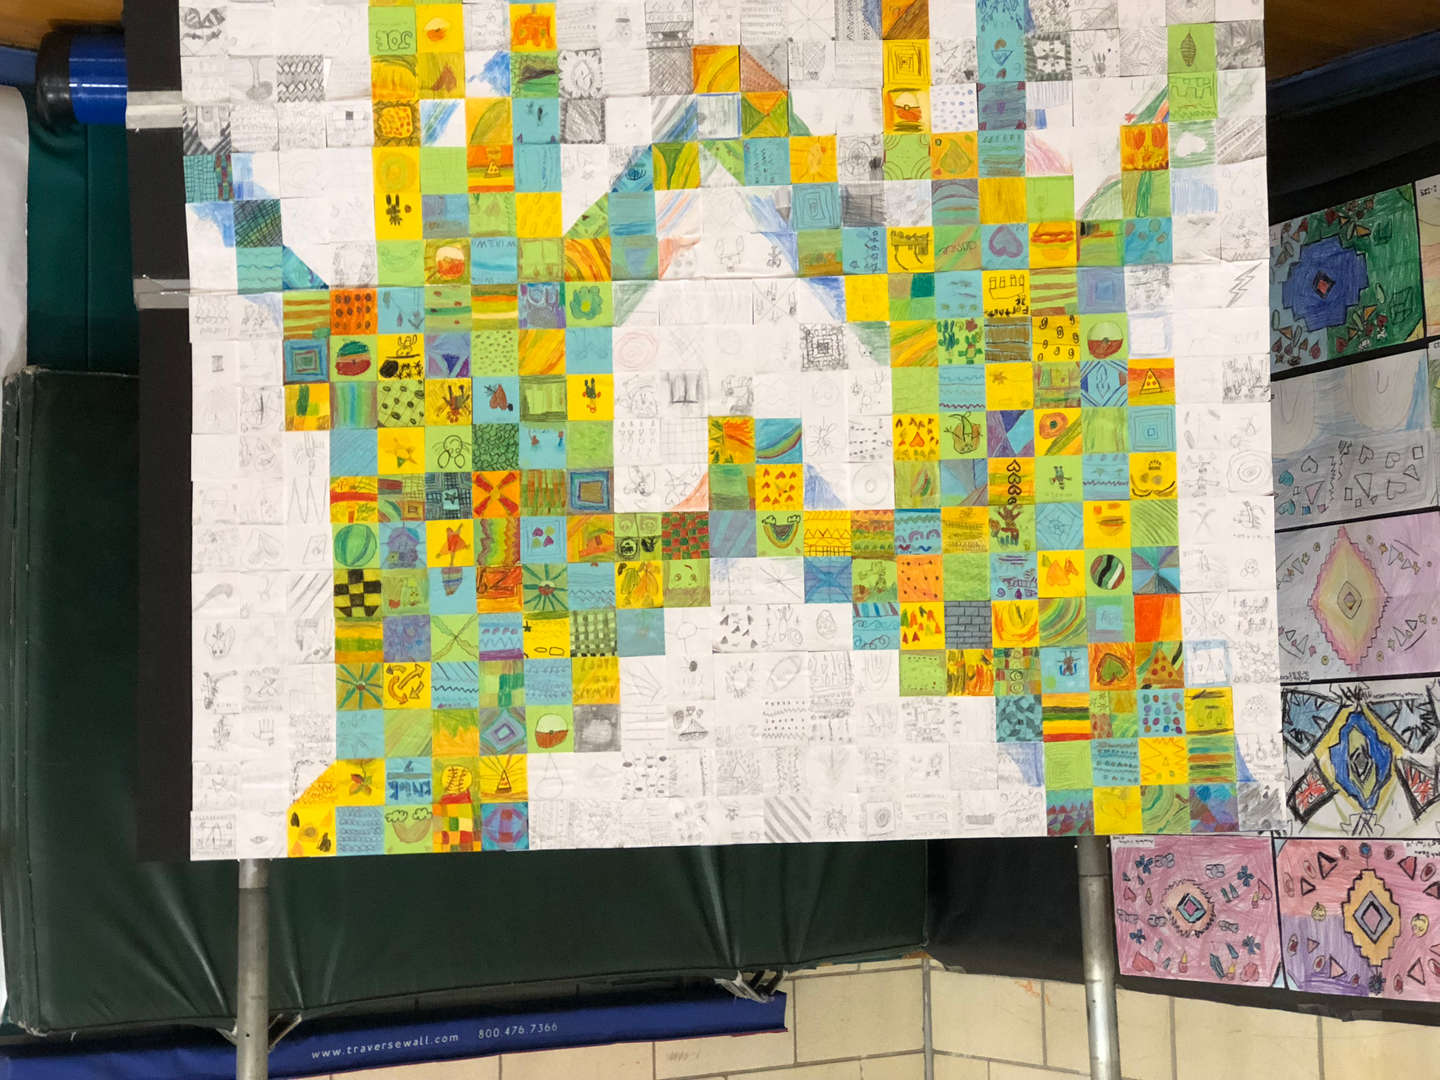 a collage of notes made by the students in the shape of two hands